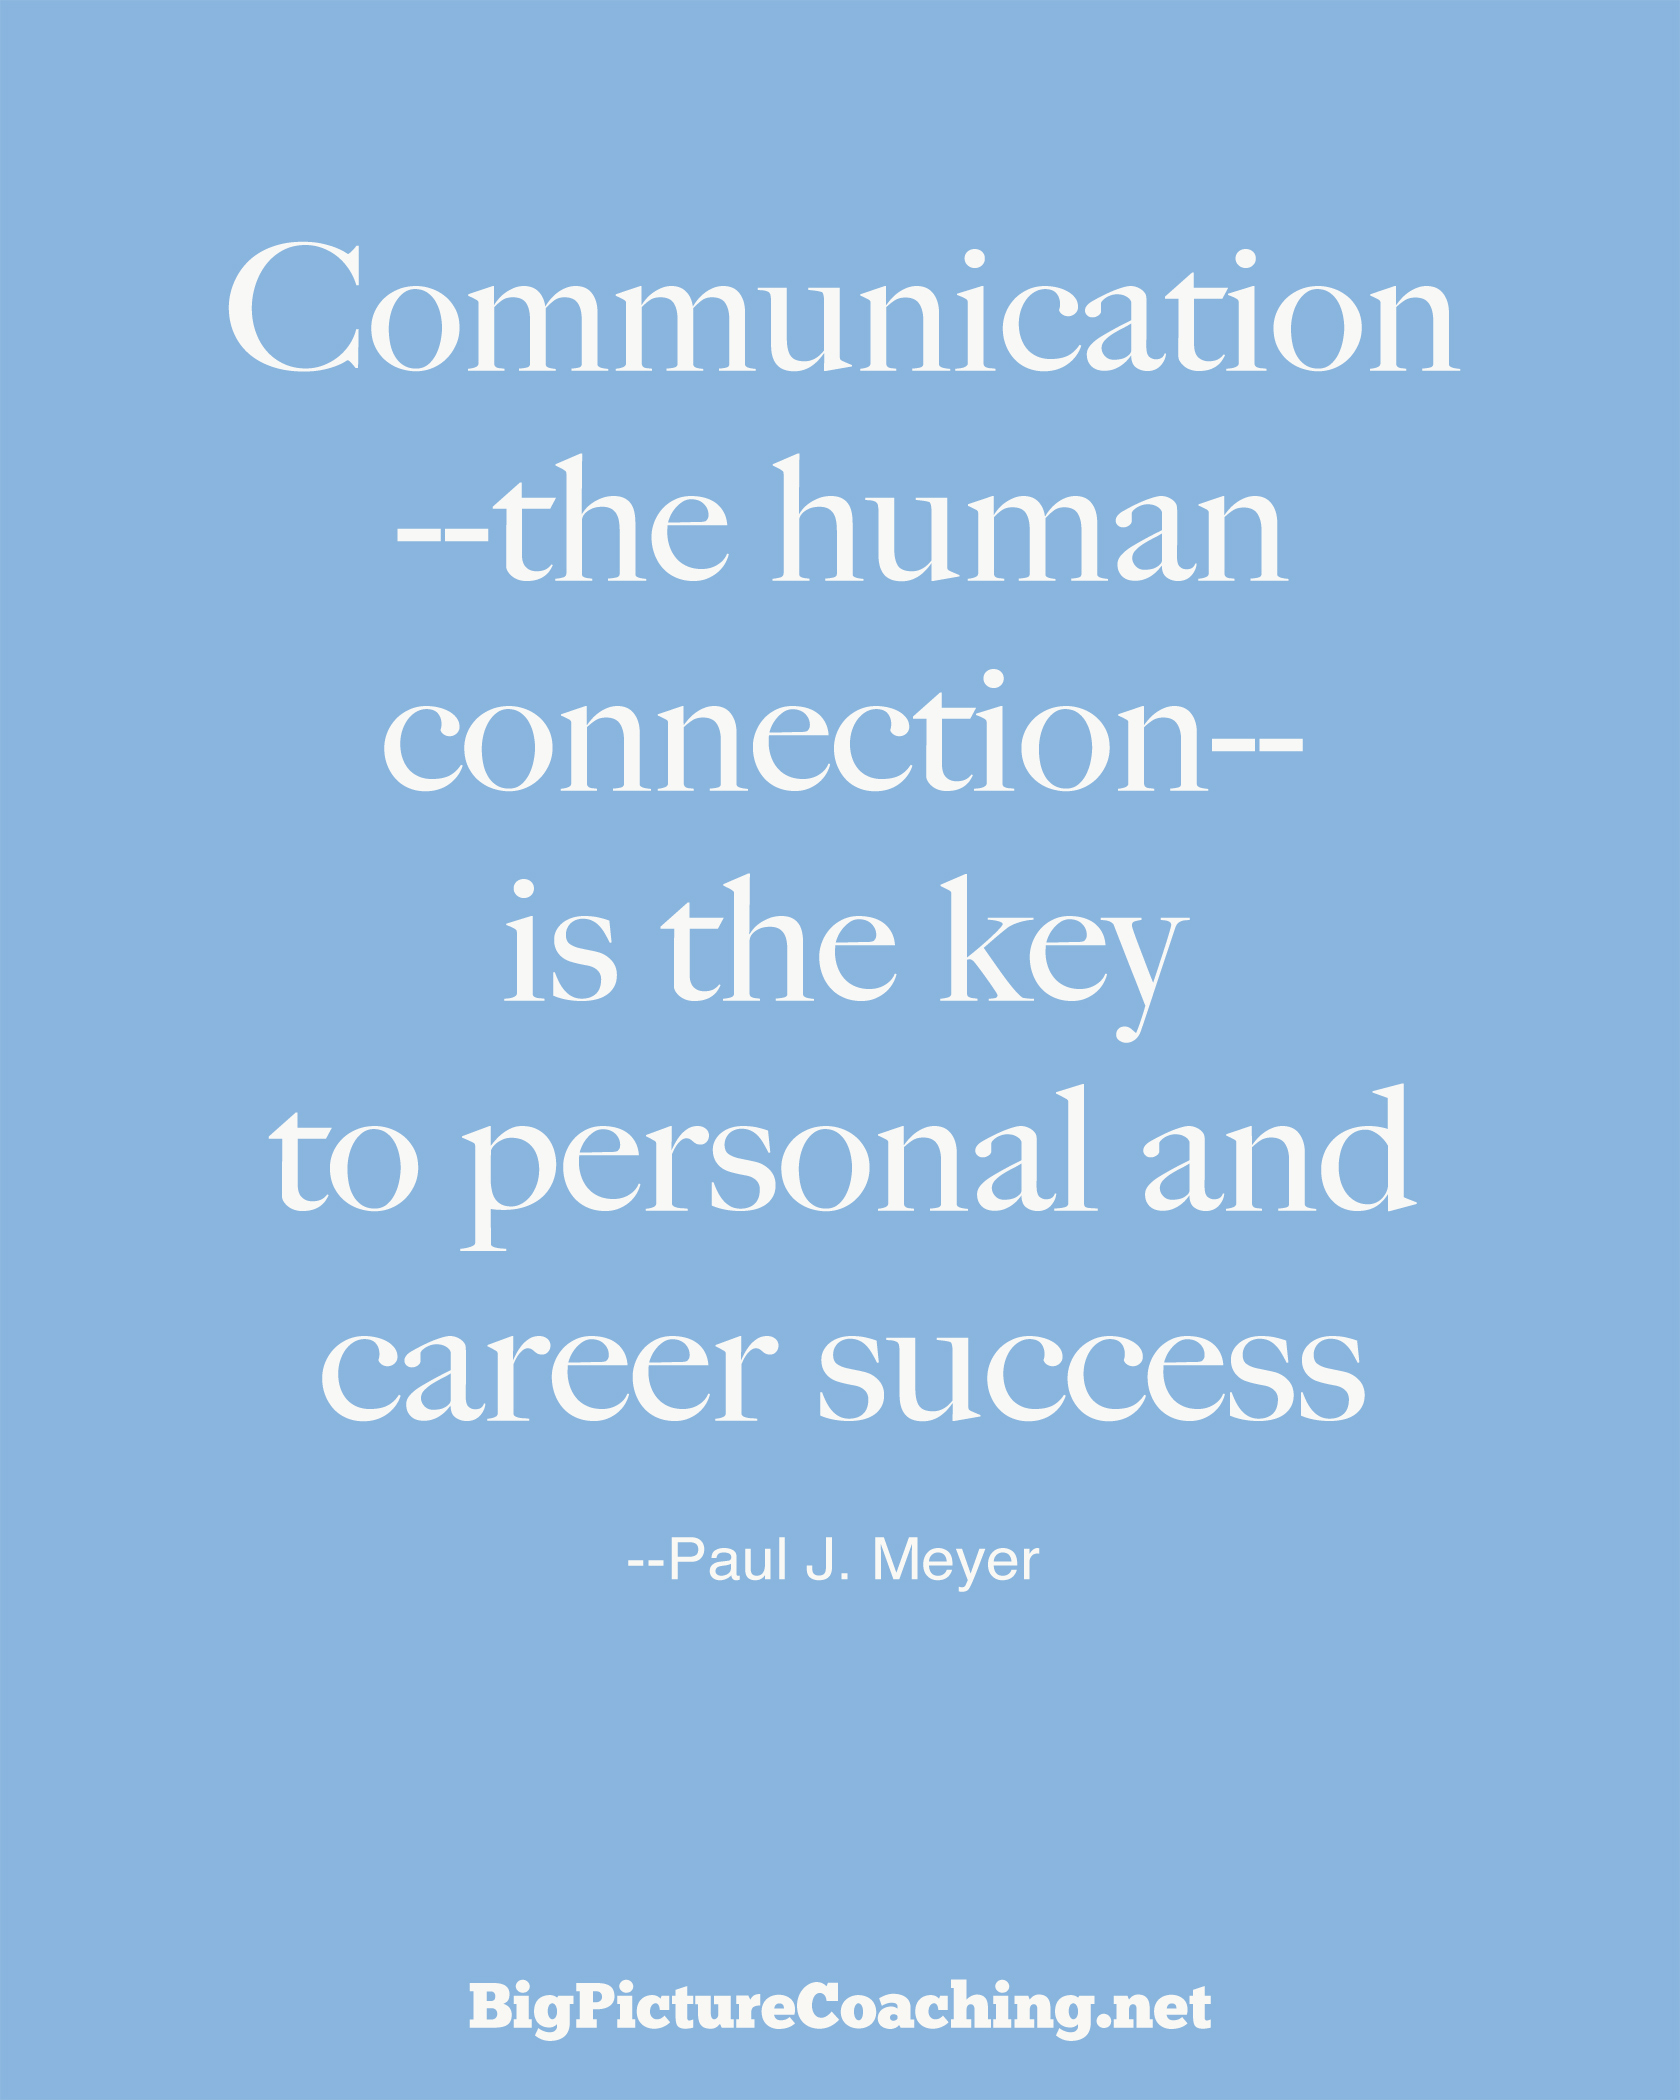 Famous Quotes About 'Communication'